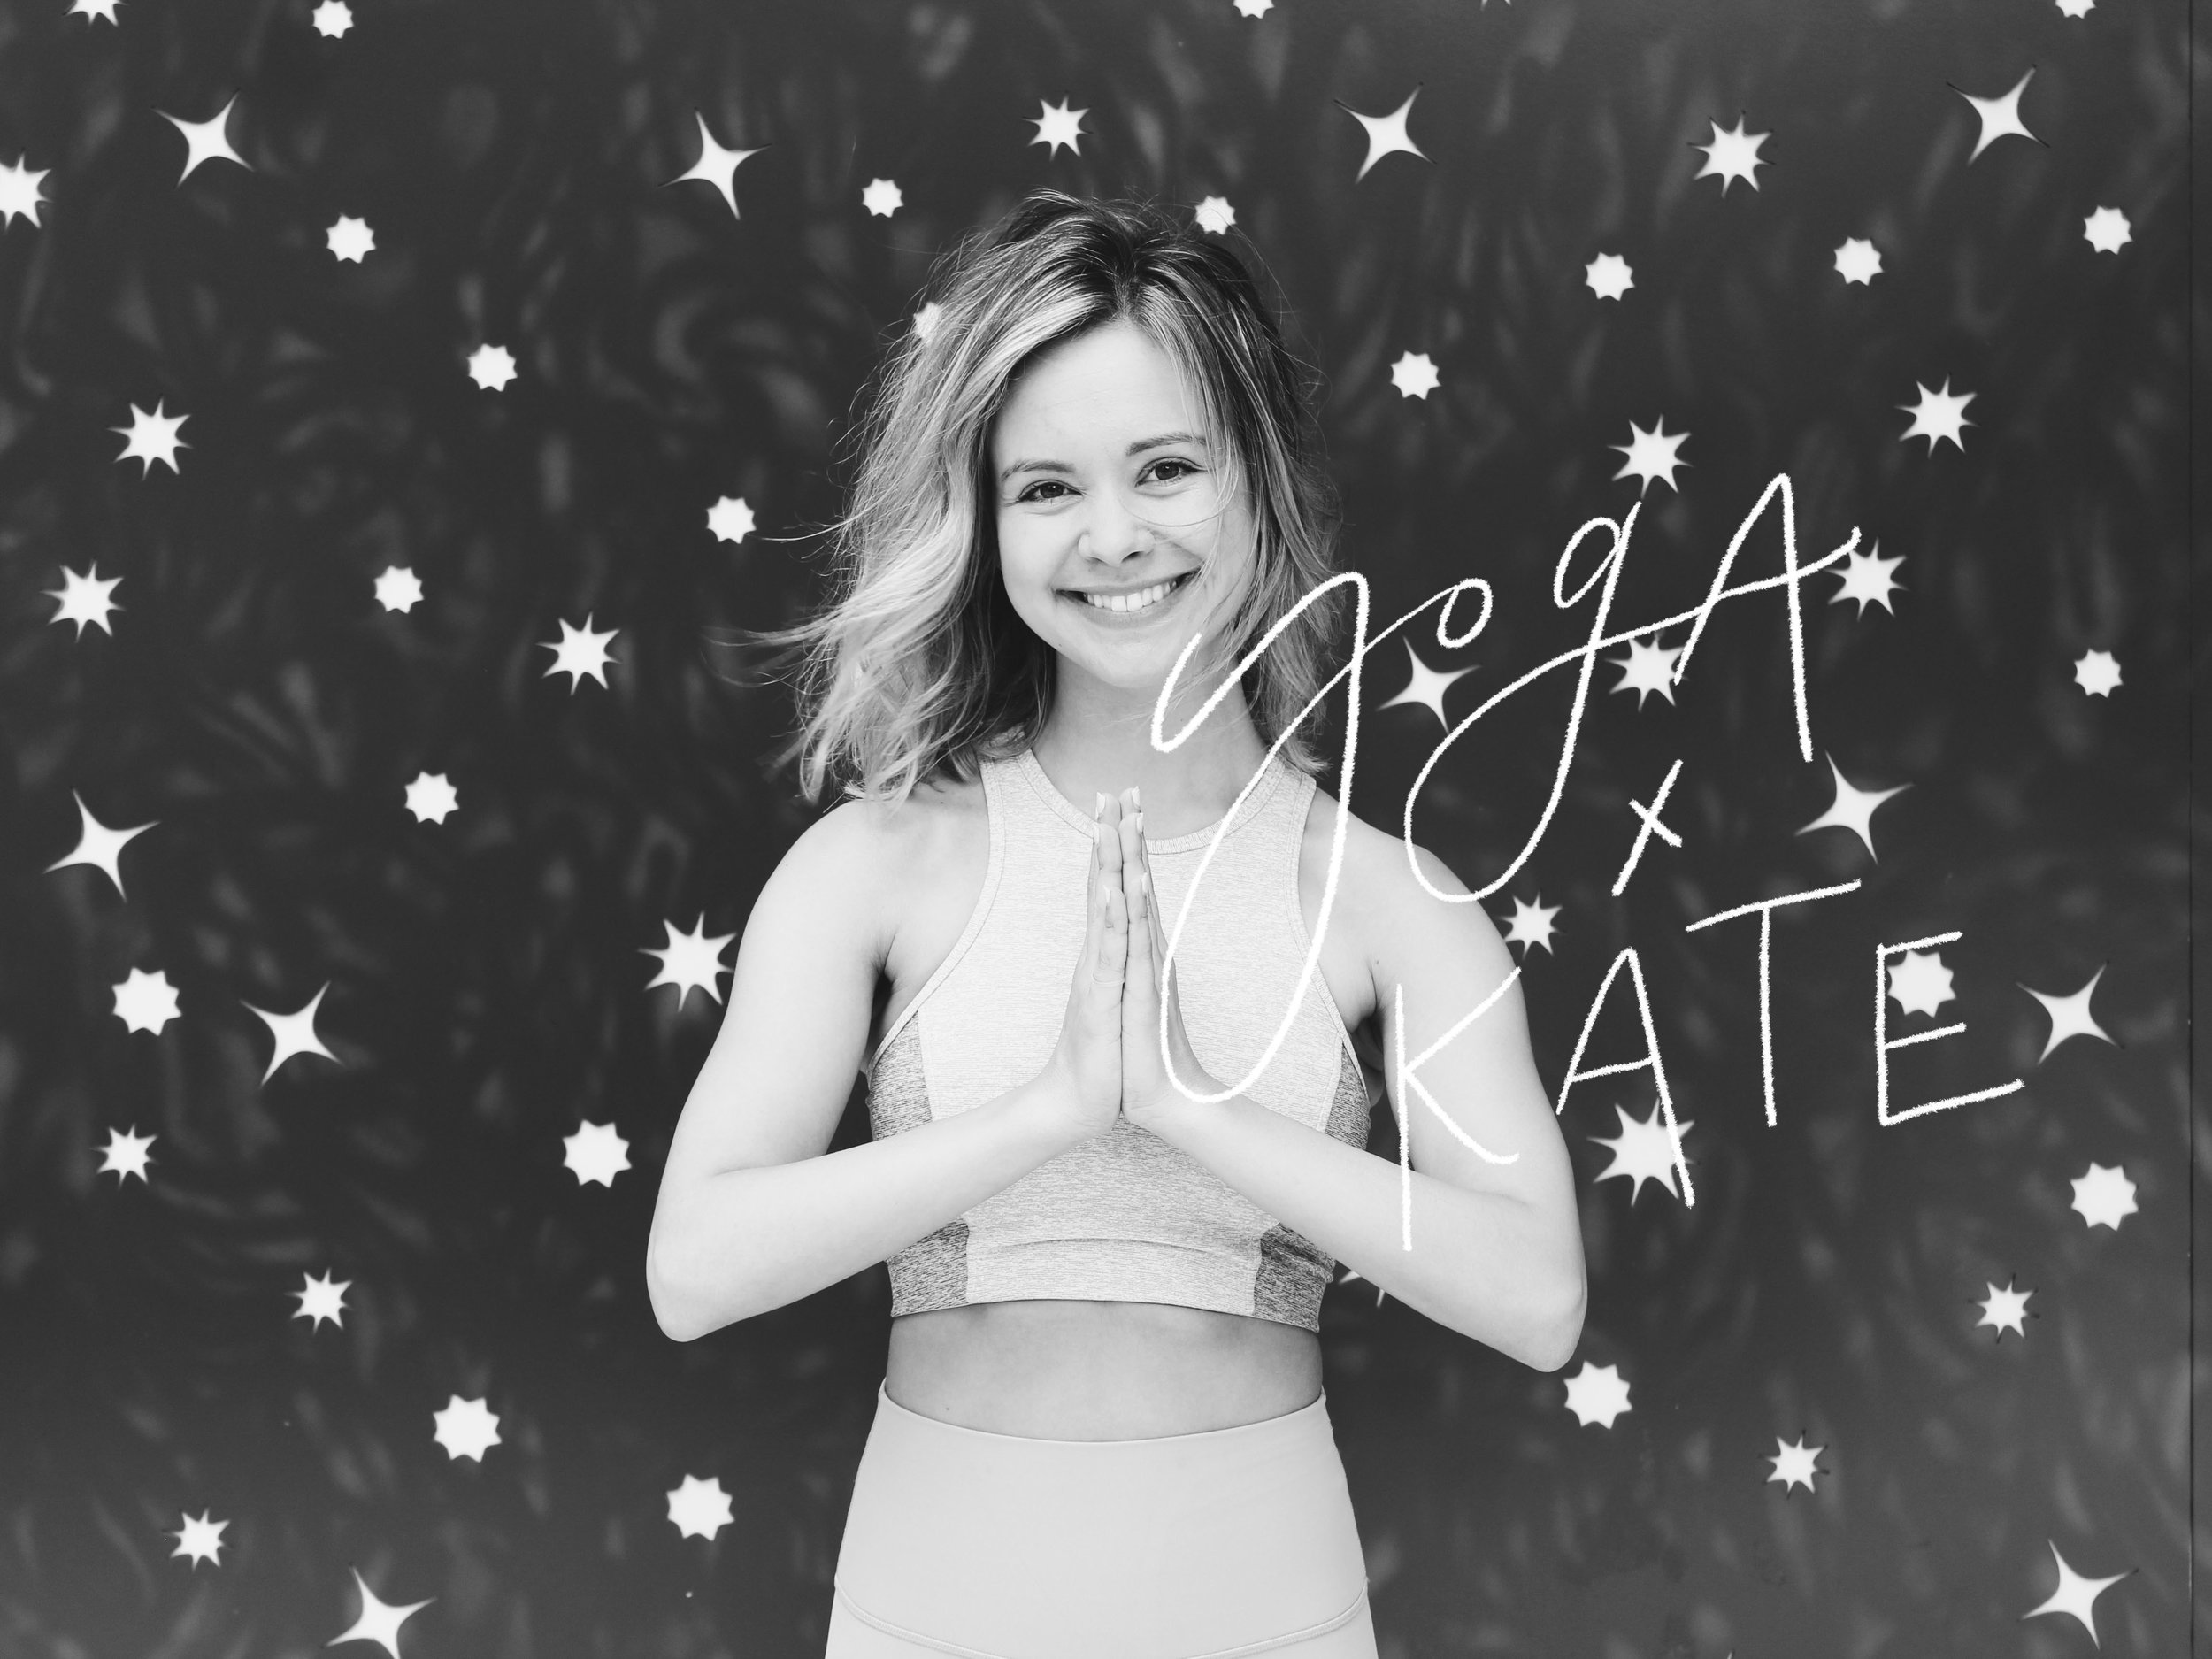 स्वागतम् - I'm Kate and this is a space for us to connect and share all things mindfulness, intention, and yoga. The hustle of city life and working around the clock led me to my first yoga class in 2017 in Boulder, Colorado and my life was changed forever. I found that when given permission to turn notifications off and turn inward, I'm able to foster the best version of myself on and off my mat, too.I believe in yoga and I'm here to share it! Join in the fun at class or on instagram with @yogaxkate